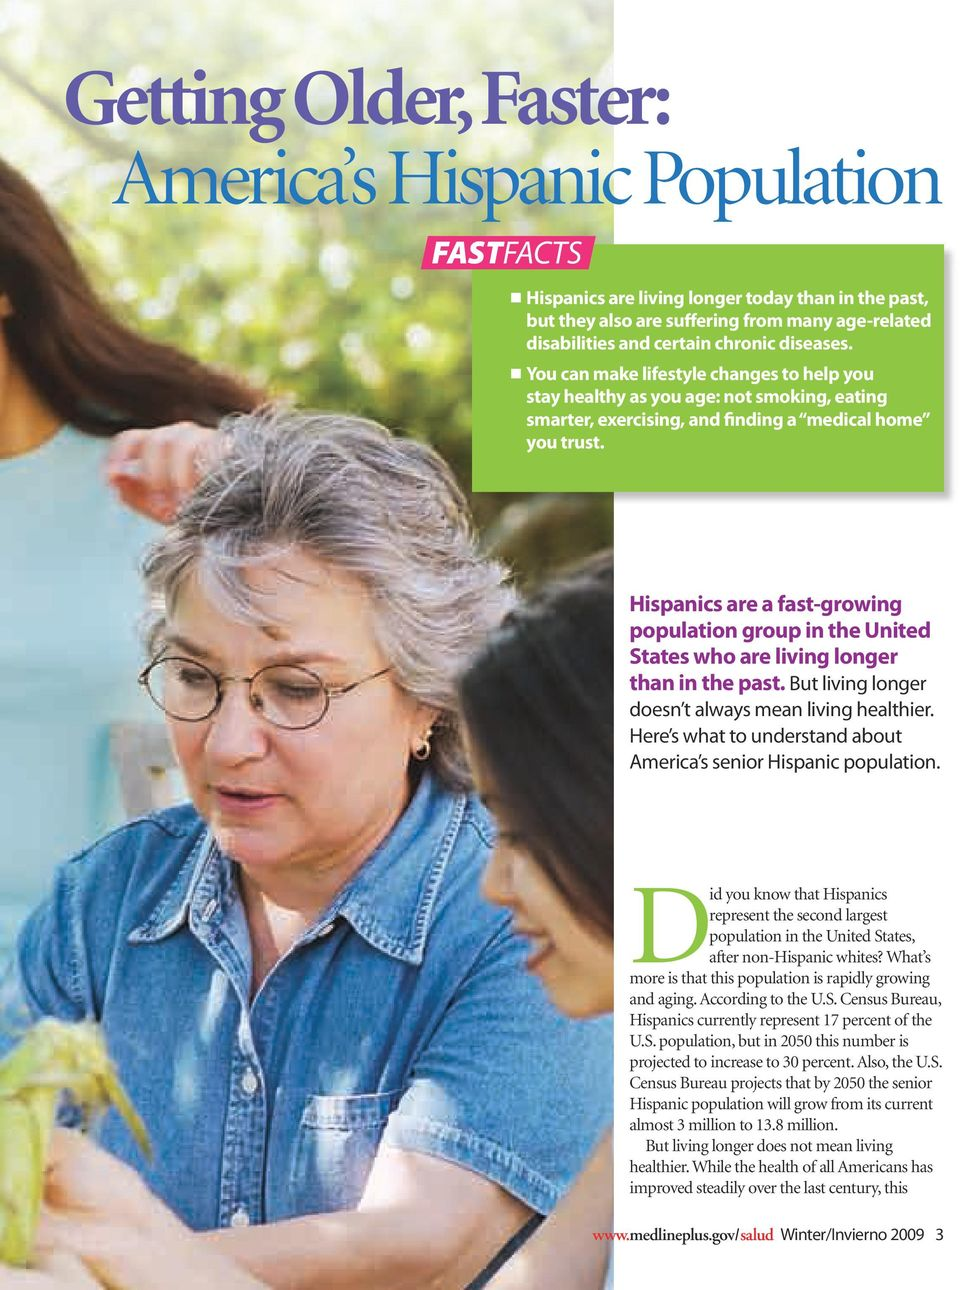 Hispanics are a fast-growing population group in the United States who are living longer than in the past. But living longer doesn t always mean living healthier.